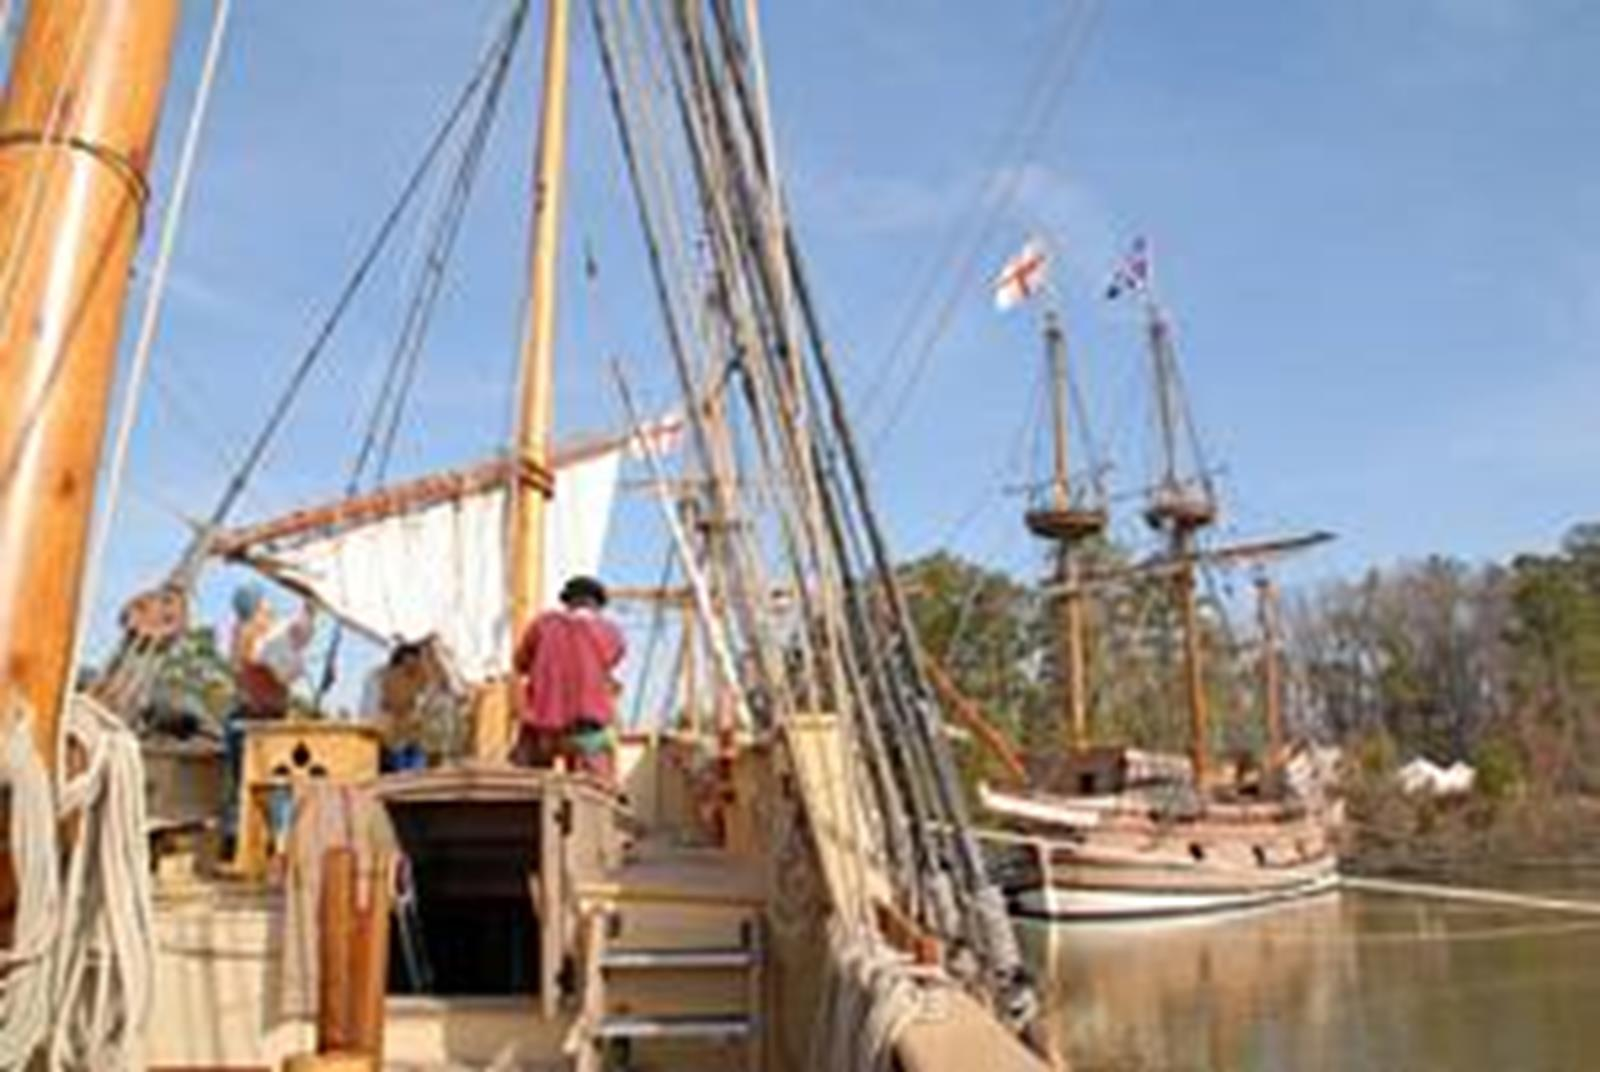 Jamestown Settlement original ship replicas